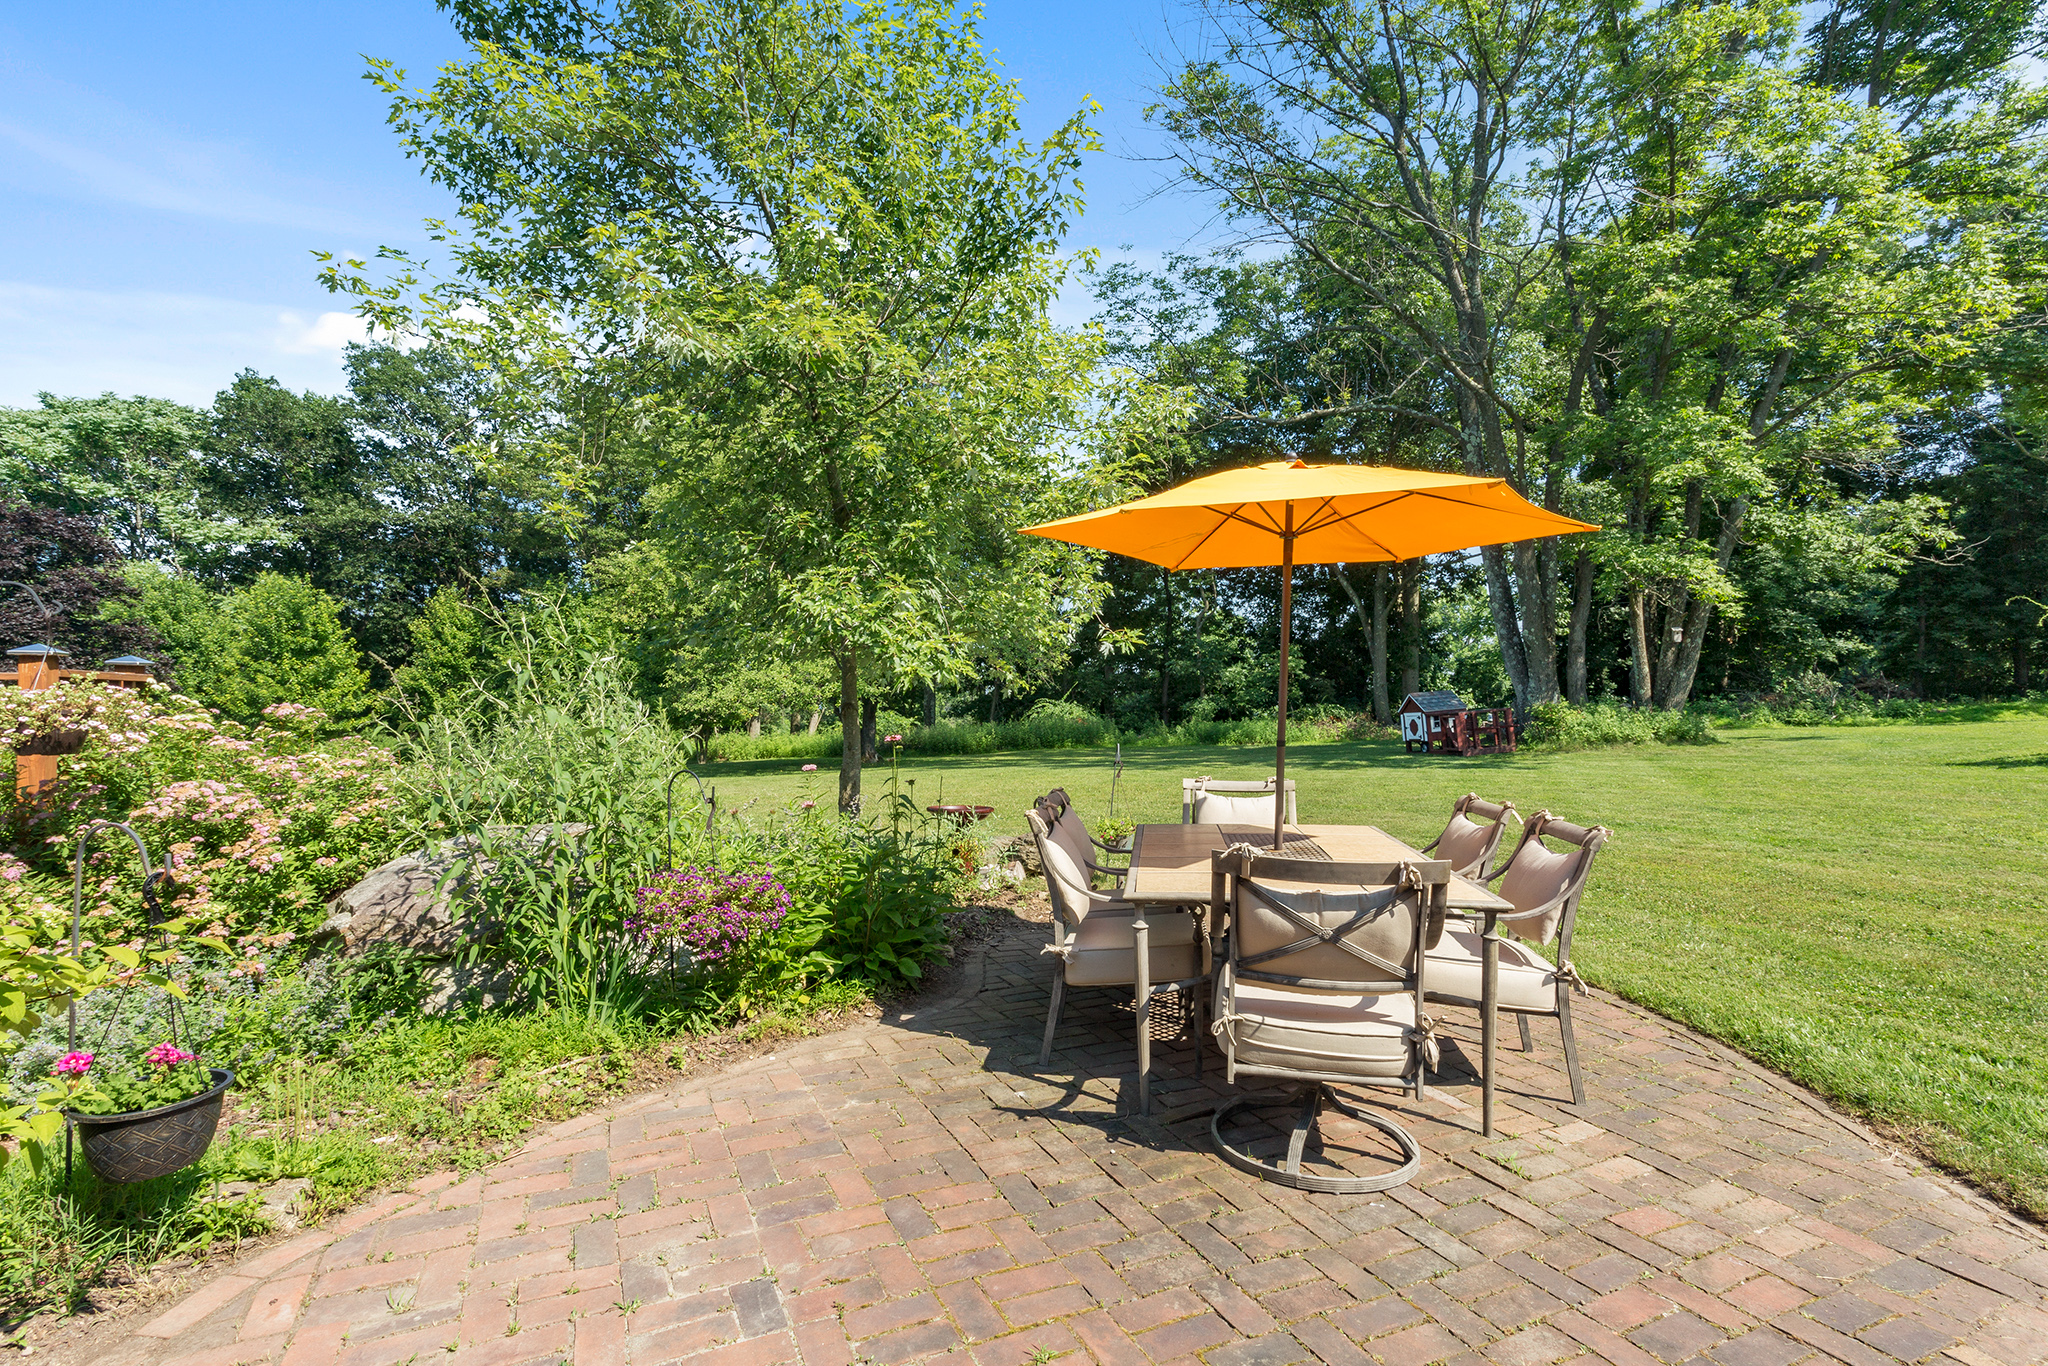 14B 7 Scarlet Oak Road Tewksbury Township — Side Patio